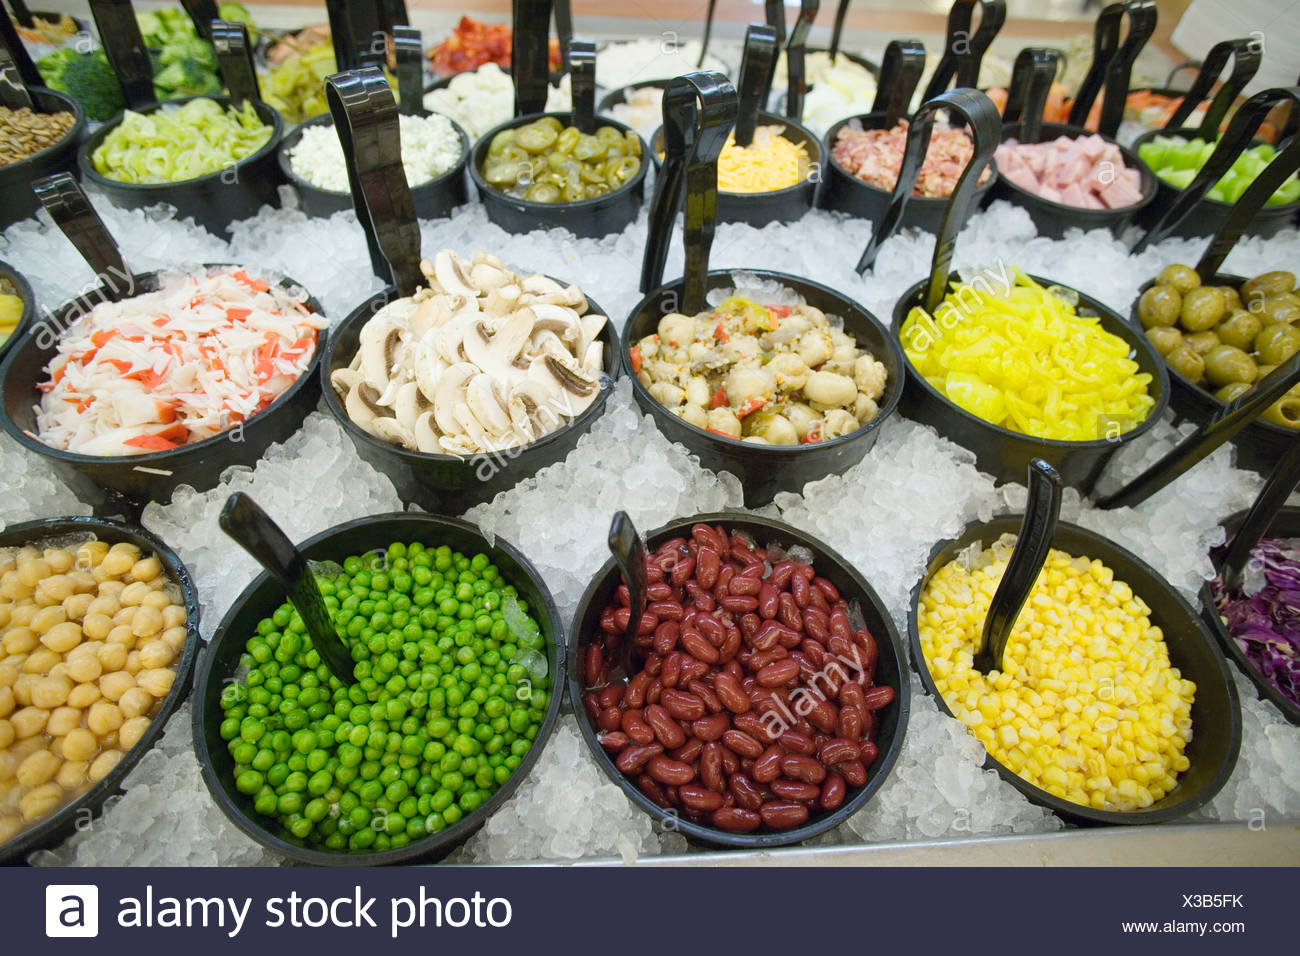 Selection of fresh food in bowls chilled with ice in supermarket still life - Stock Image